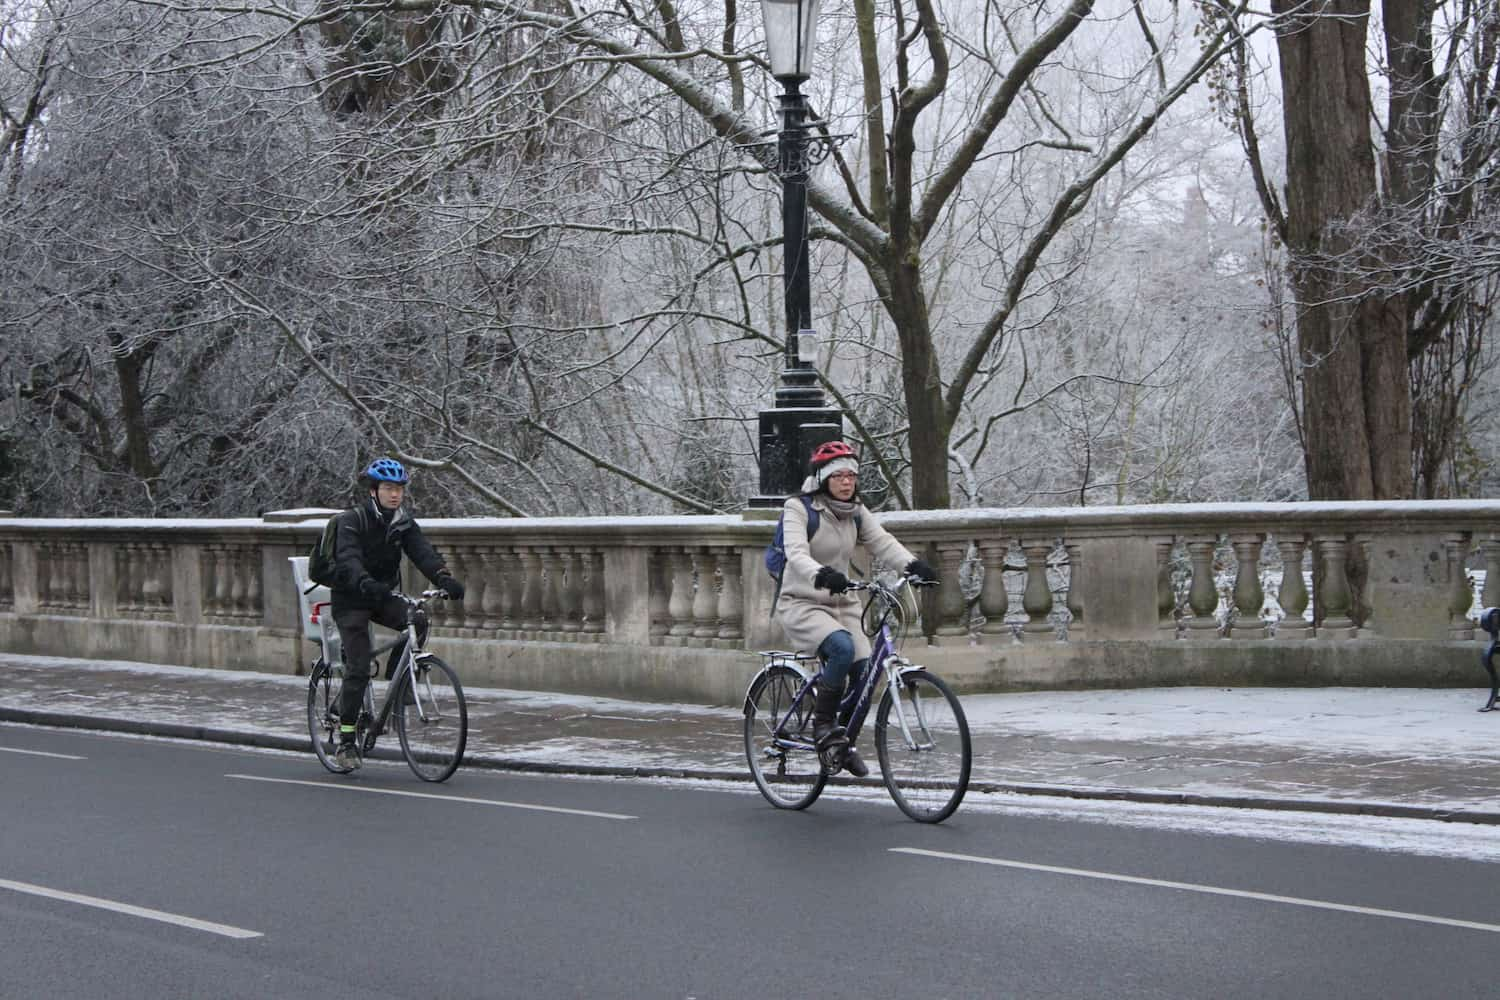 Cycling In Cold Weather - Winter